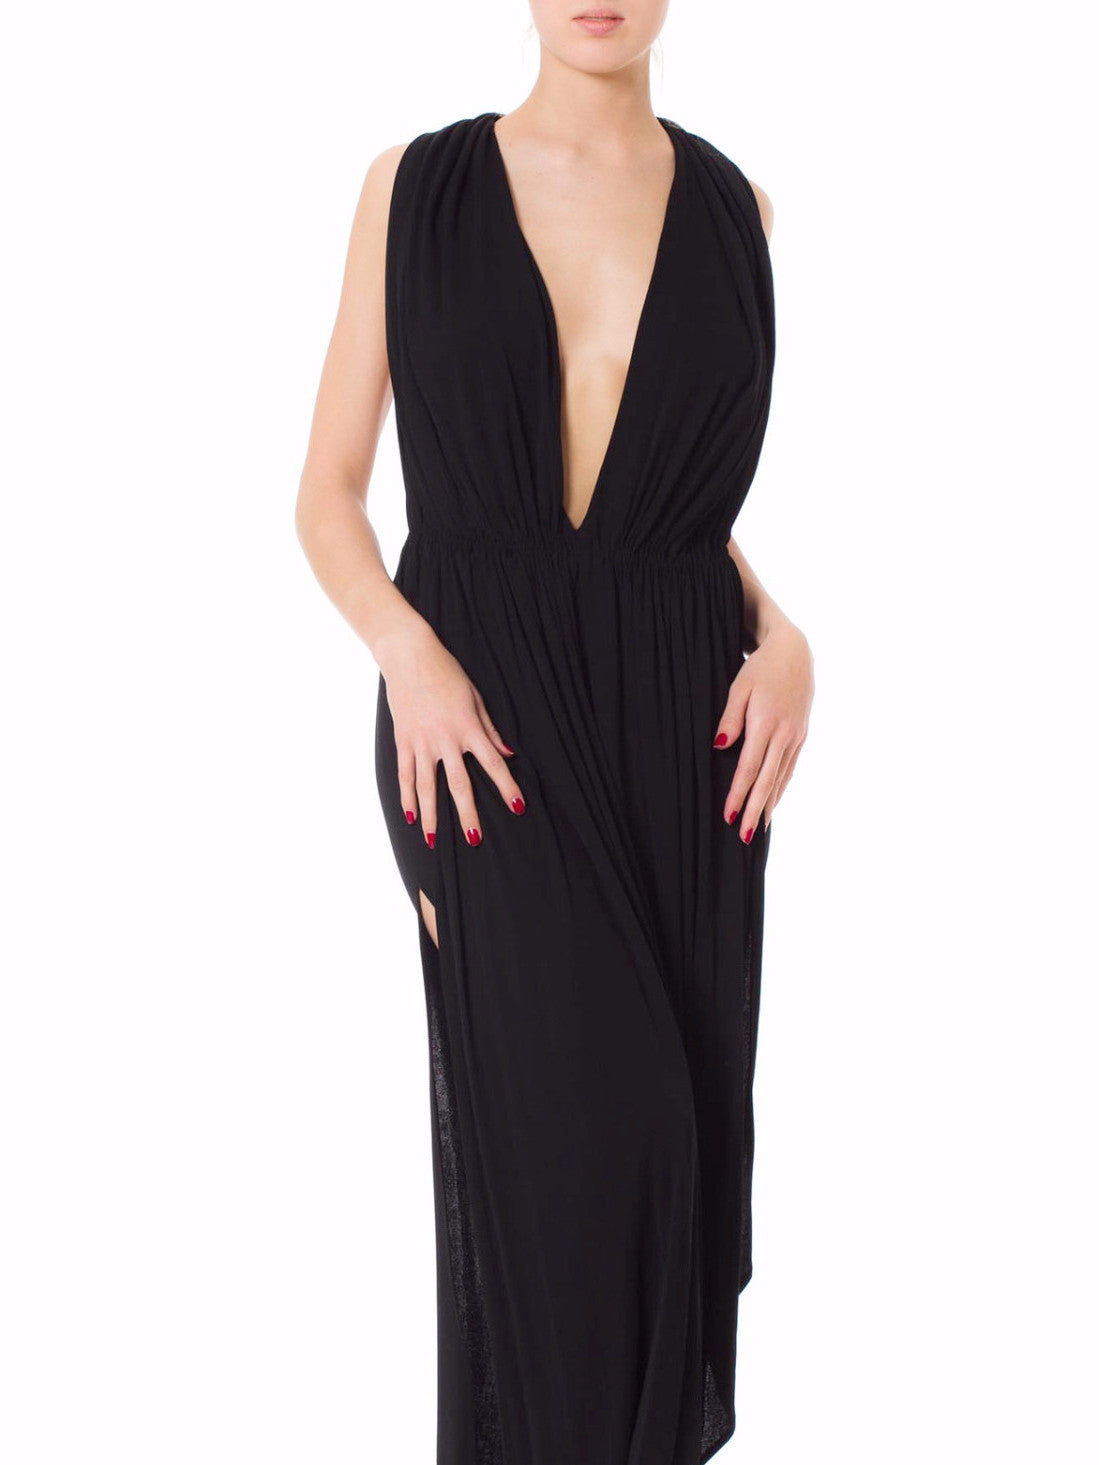 MORPHEW COLLECTION Black Rayon Jersey Glam Low Cut Gown With 1920S Chinese Embroidered Straps